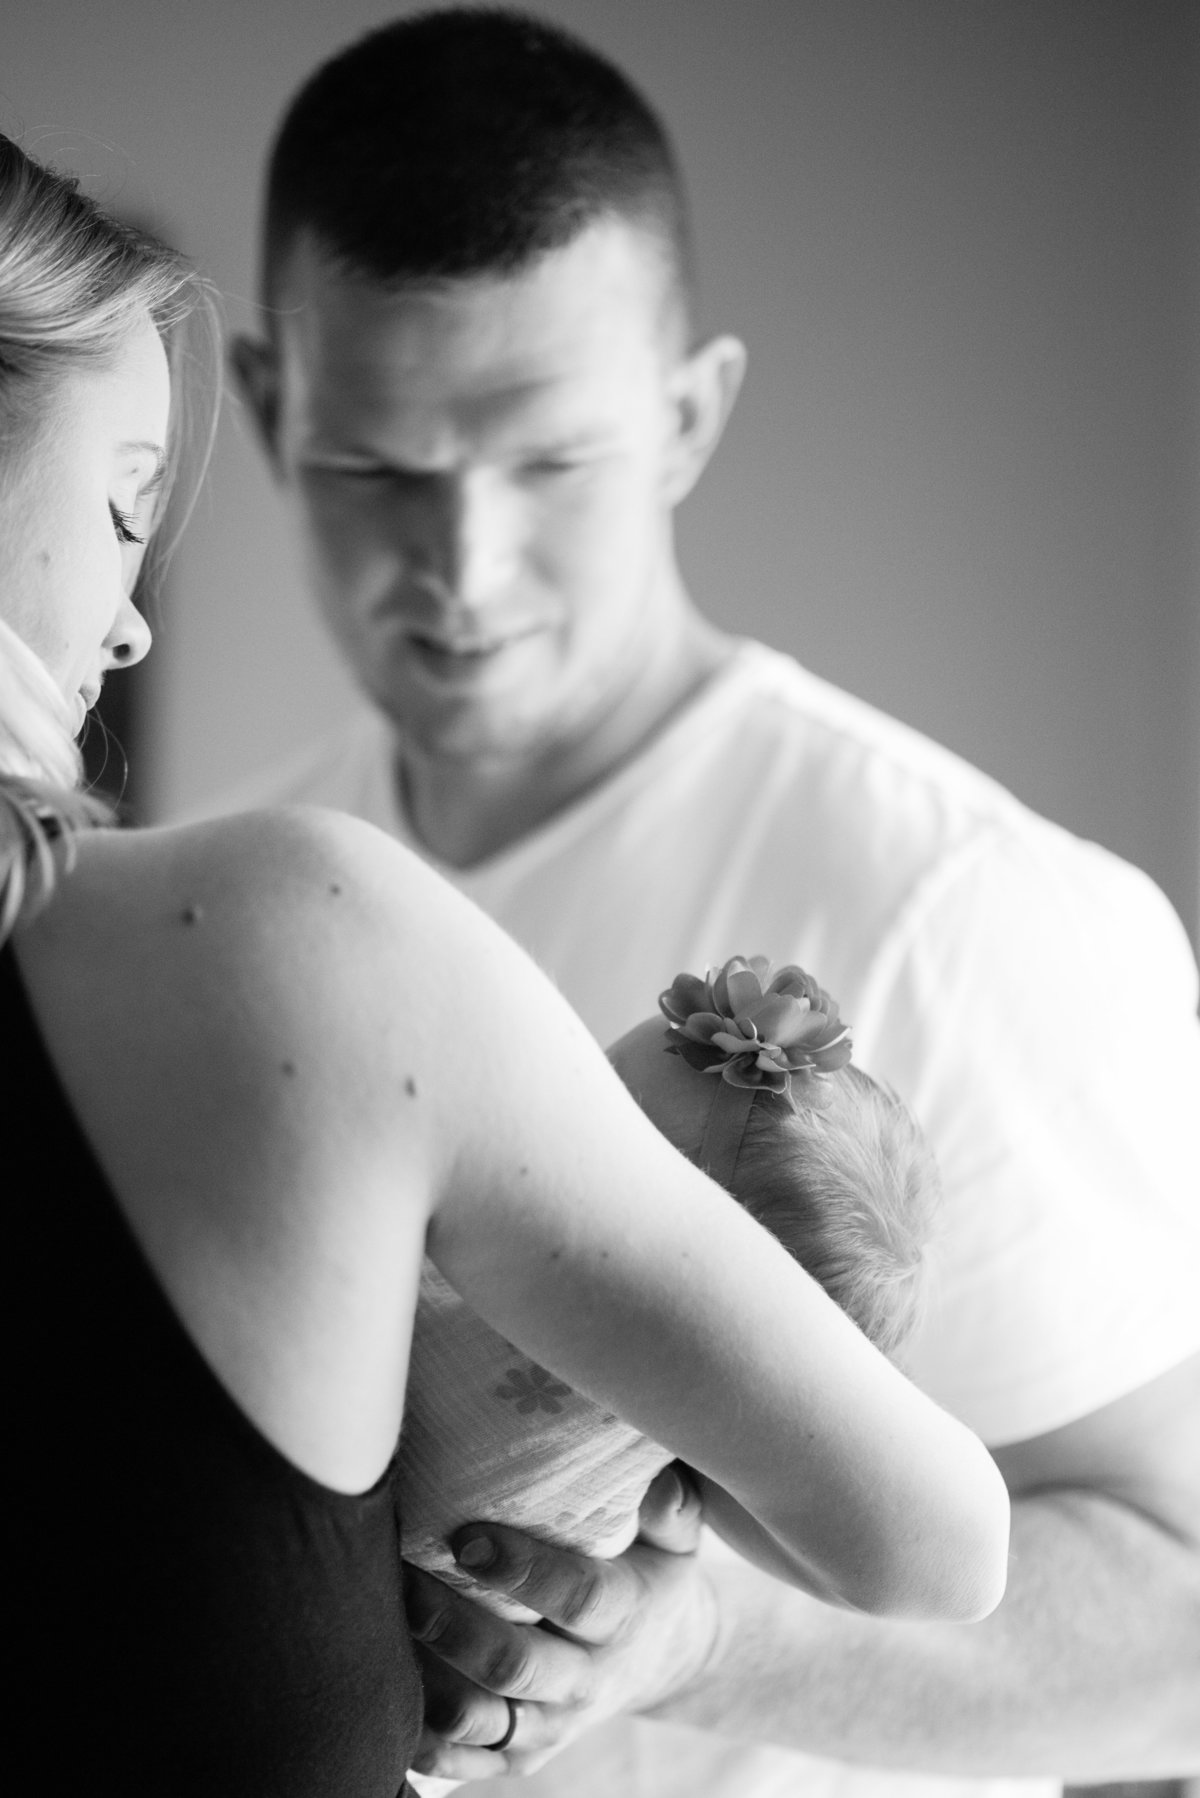 lakegeorge-saratoga-newborn-photography-lauren-kirkham-photography-1